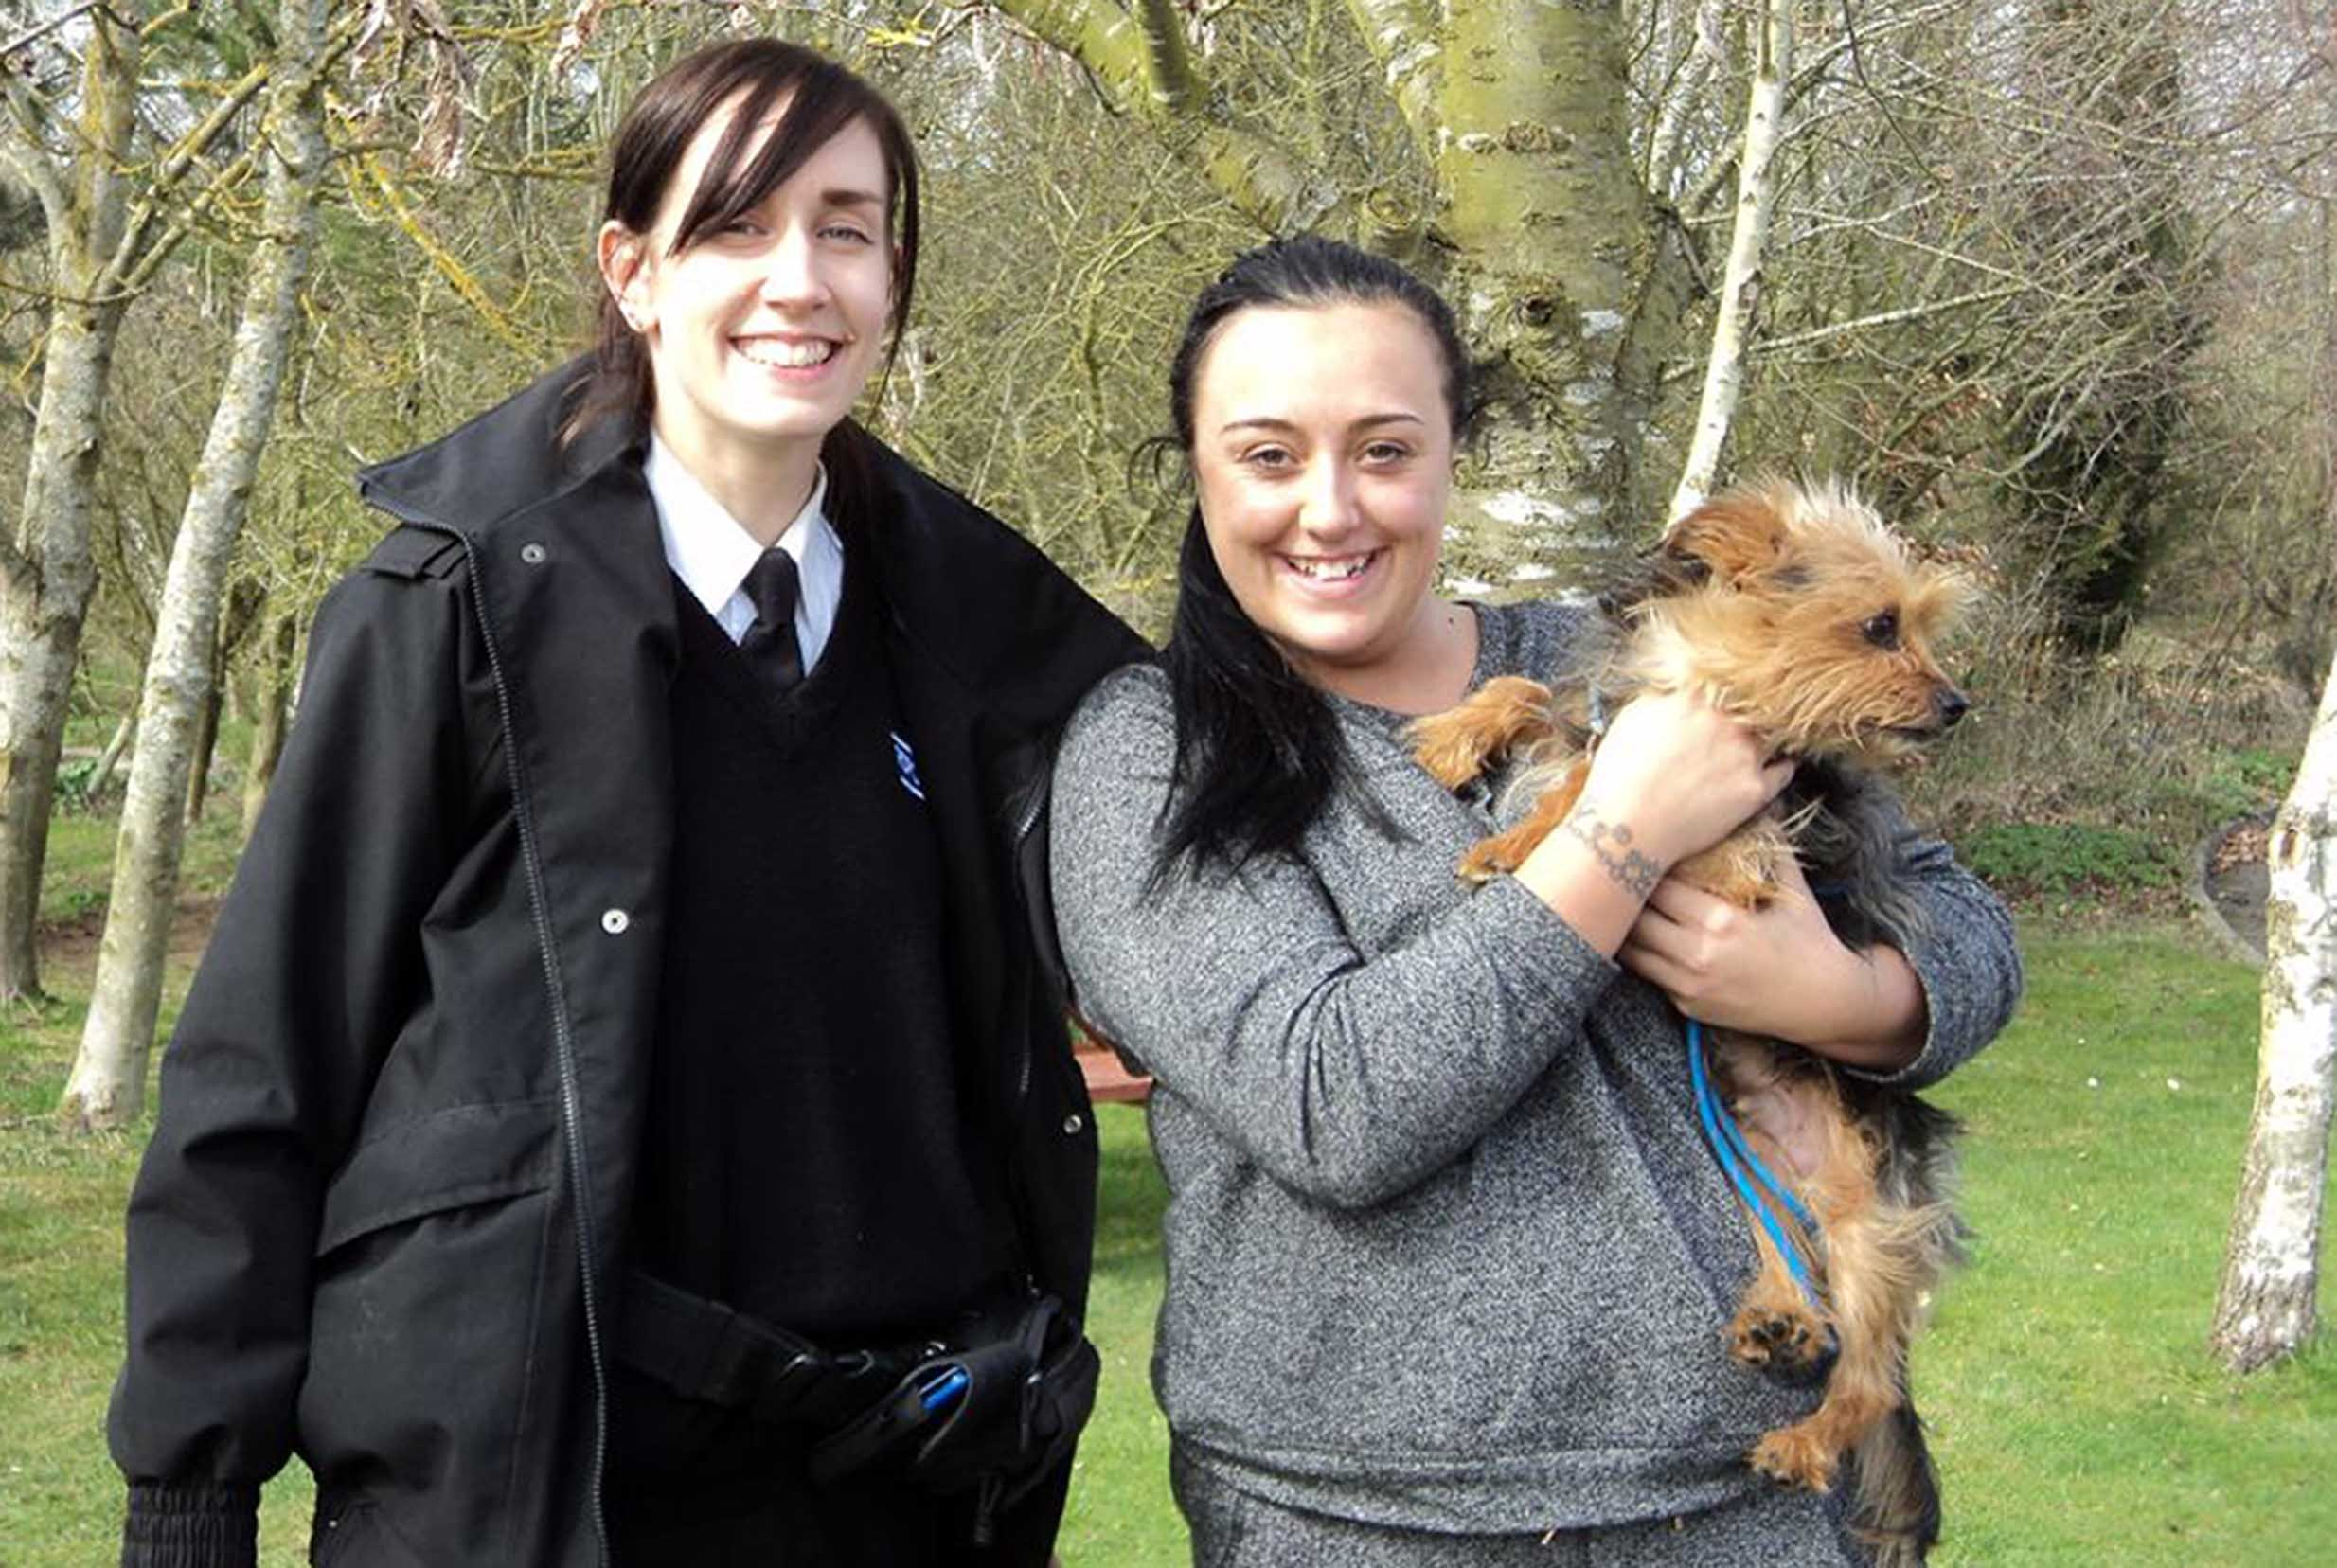 BEST QUALITY AVAILABLEUndated handout photo issued by RSPCA of Alfie, with RSPCA inspector Stephanie Law (left) and owner Kirsty Mitton (right), as the stolen dog dumped by callous thieves engineered a rescue by flagging down a passing RSPCA van more than 100 miles from its home. PRESS ASSOCIATION Photo. Issue date: Wednesday April 8, 2015. Alfie the Yorkshire Terrier brought charity inspector Stephanie Law's van to a halt on a country road in Buckinghamshire, after dashing out of nearby woodland and into the middle of the lane, barking. Braking to a stop, Ms Law then opened her door only for Alfie to immediately jump inside. See PA story ANIMALS Rescue. Photo credit should read: RSPCA/PA WireNOTE TO EDITORS: This handout photo may only be used in for editorial reporting purposes for the contemporaneous illustration of events, things or the people in the image or facts mentioned in the caption. Reuse of the picture may require further permission from the copyright holder.